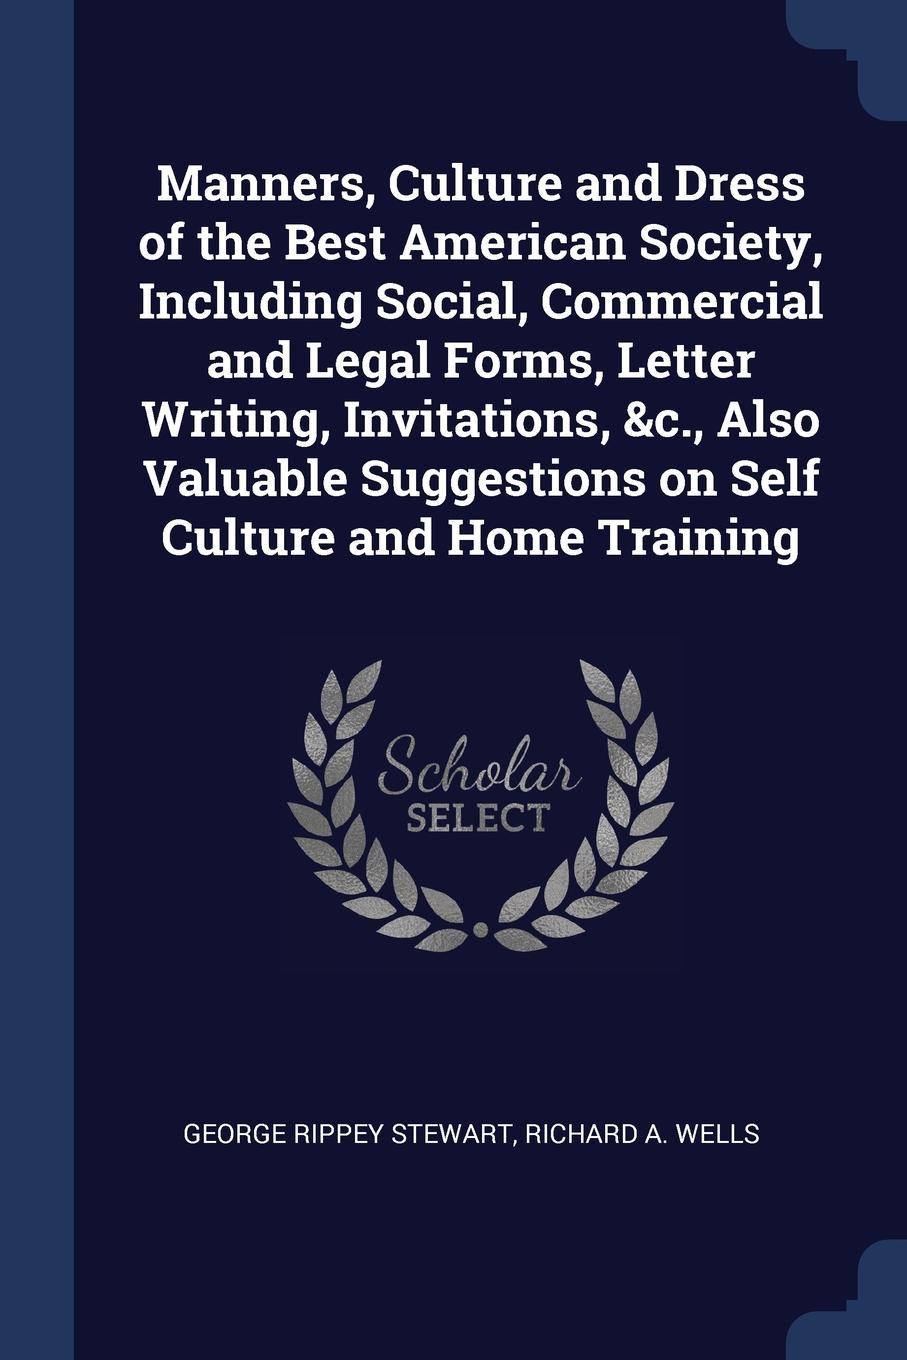 Manners, Culture and Dress of the Best American Society, Including Social, Commercial and Legal Forms, Letter Writing, Invitations, .c., Also Valuable Suggestions on Self Culture and Home Training. George Rippey Stewart, Richard A. Wells